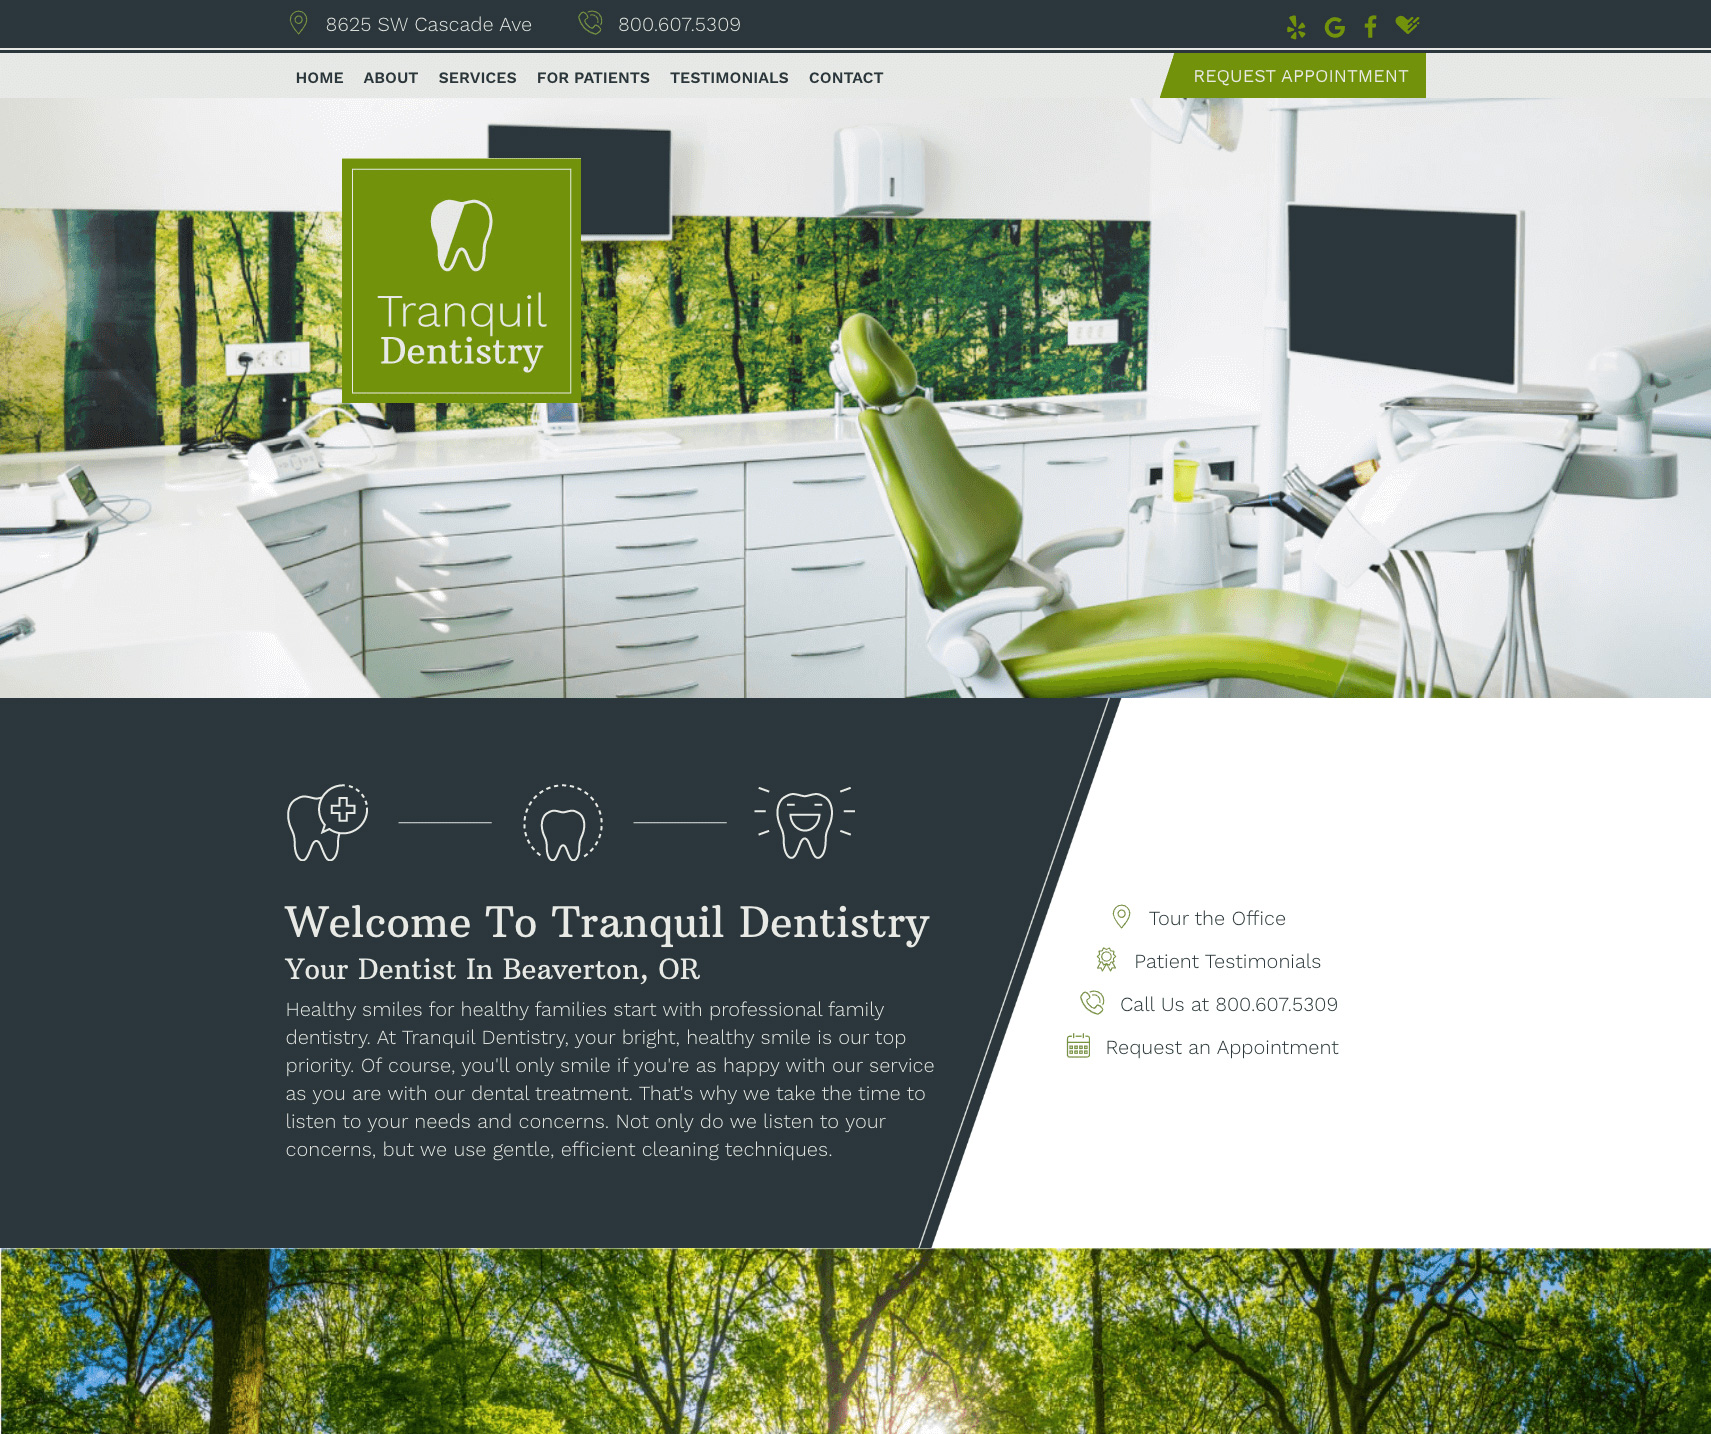 This is an example of our design called Tranquil Dentistry